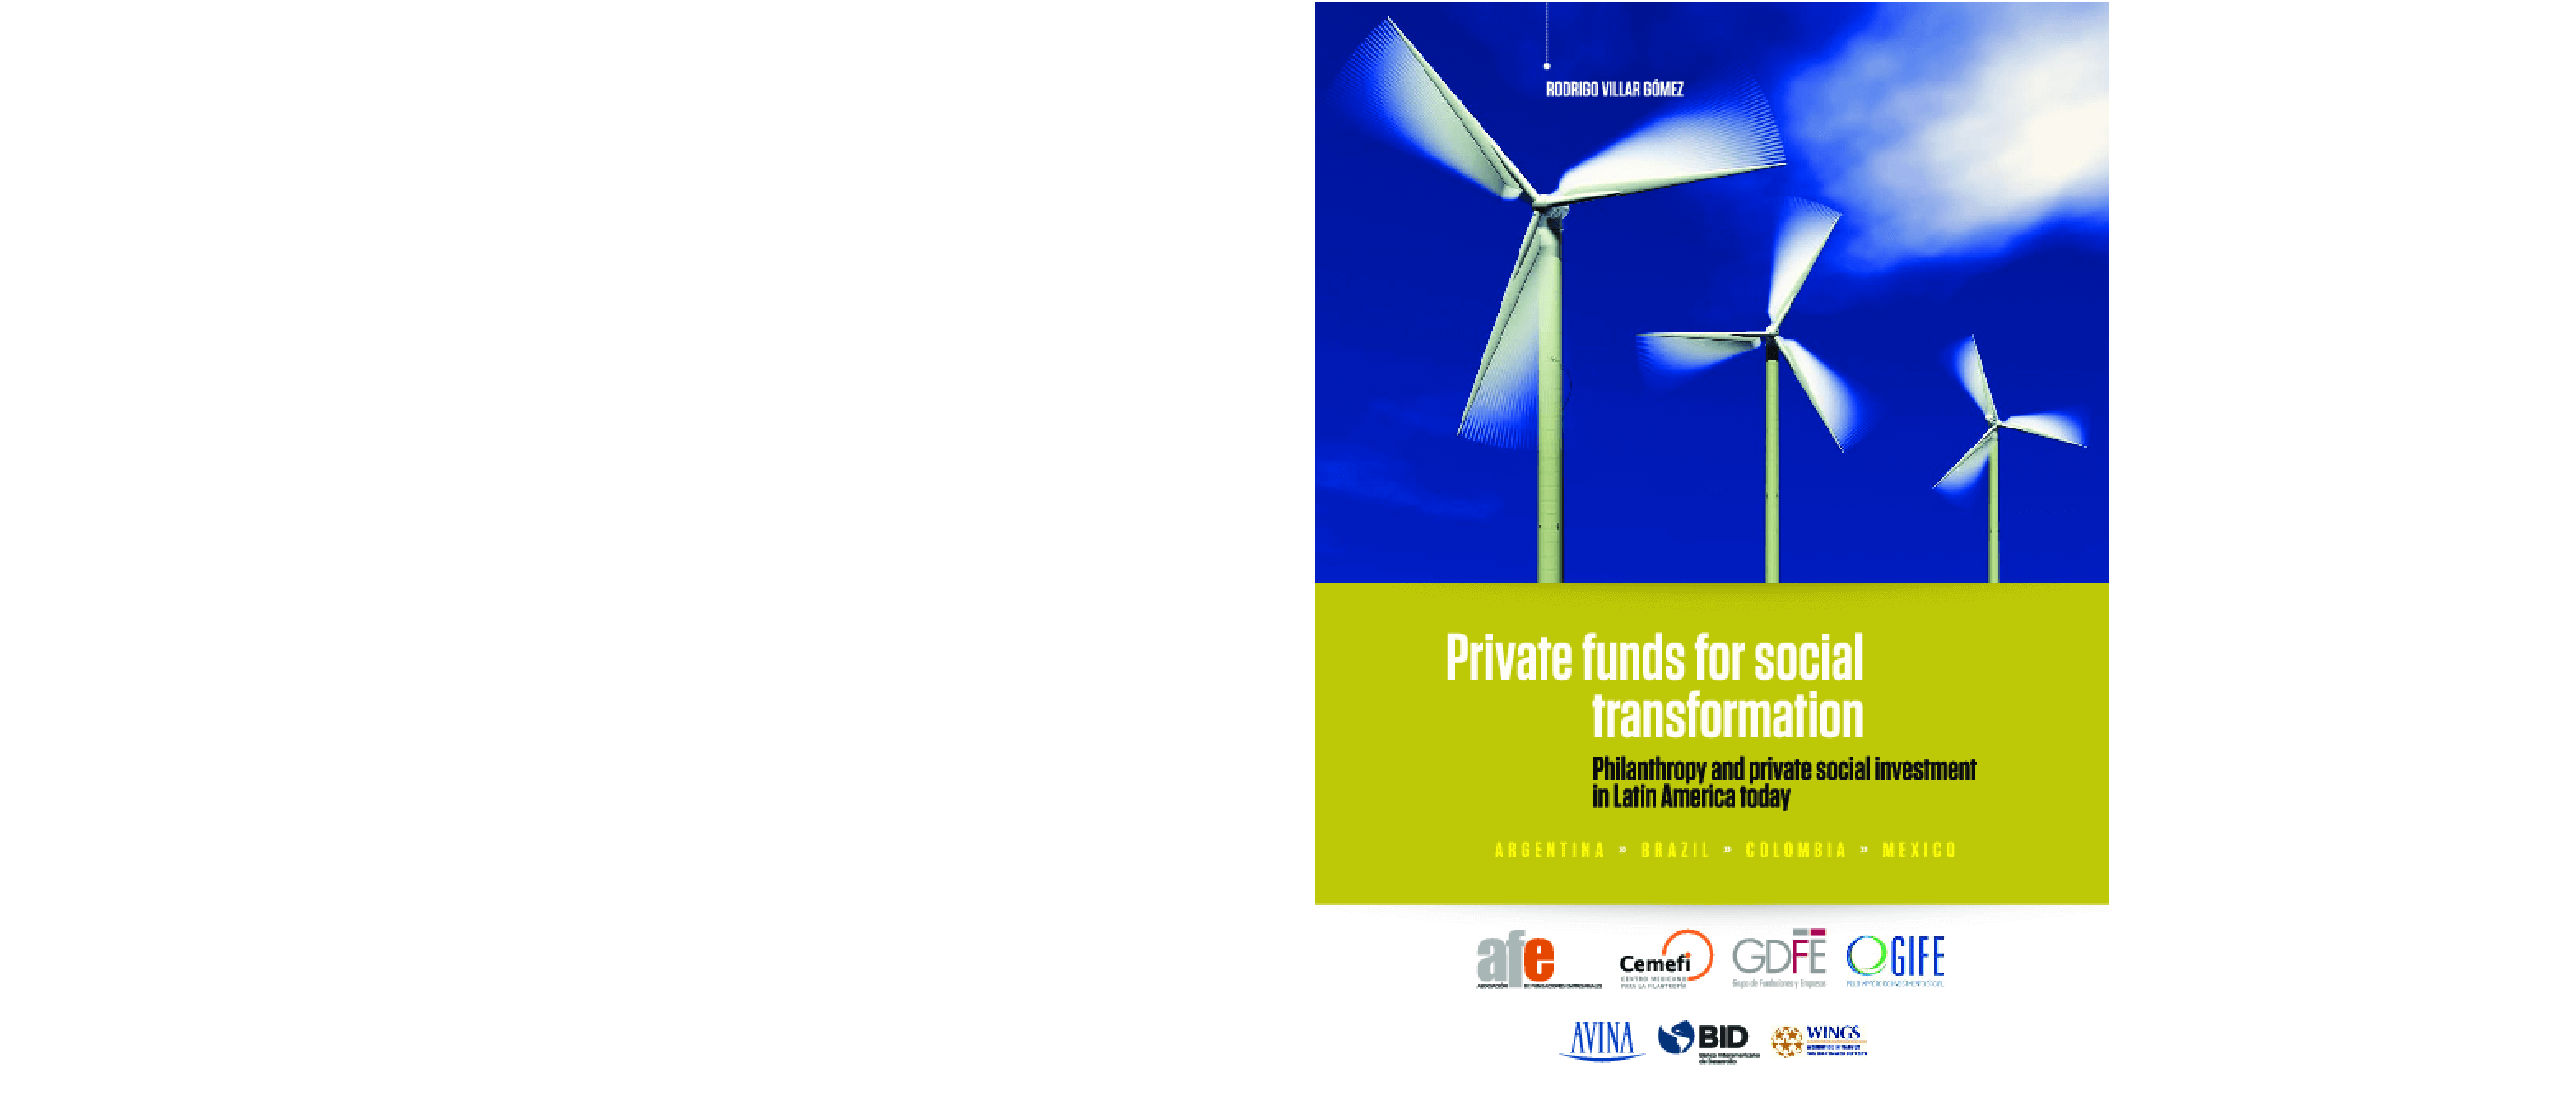 Private Funds for Social Transformation: Philanthropy and Private Social Investment in Latin America Today